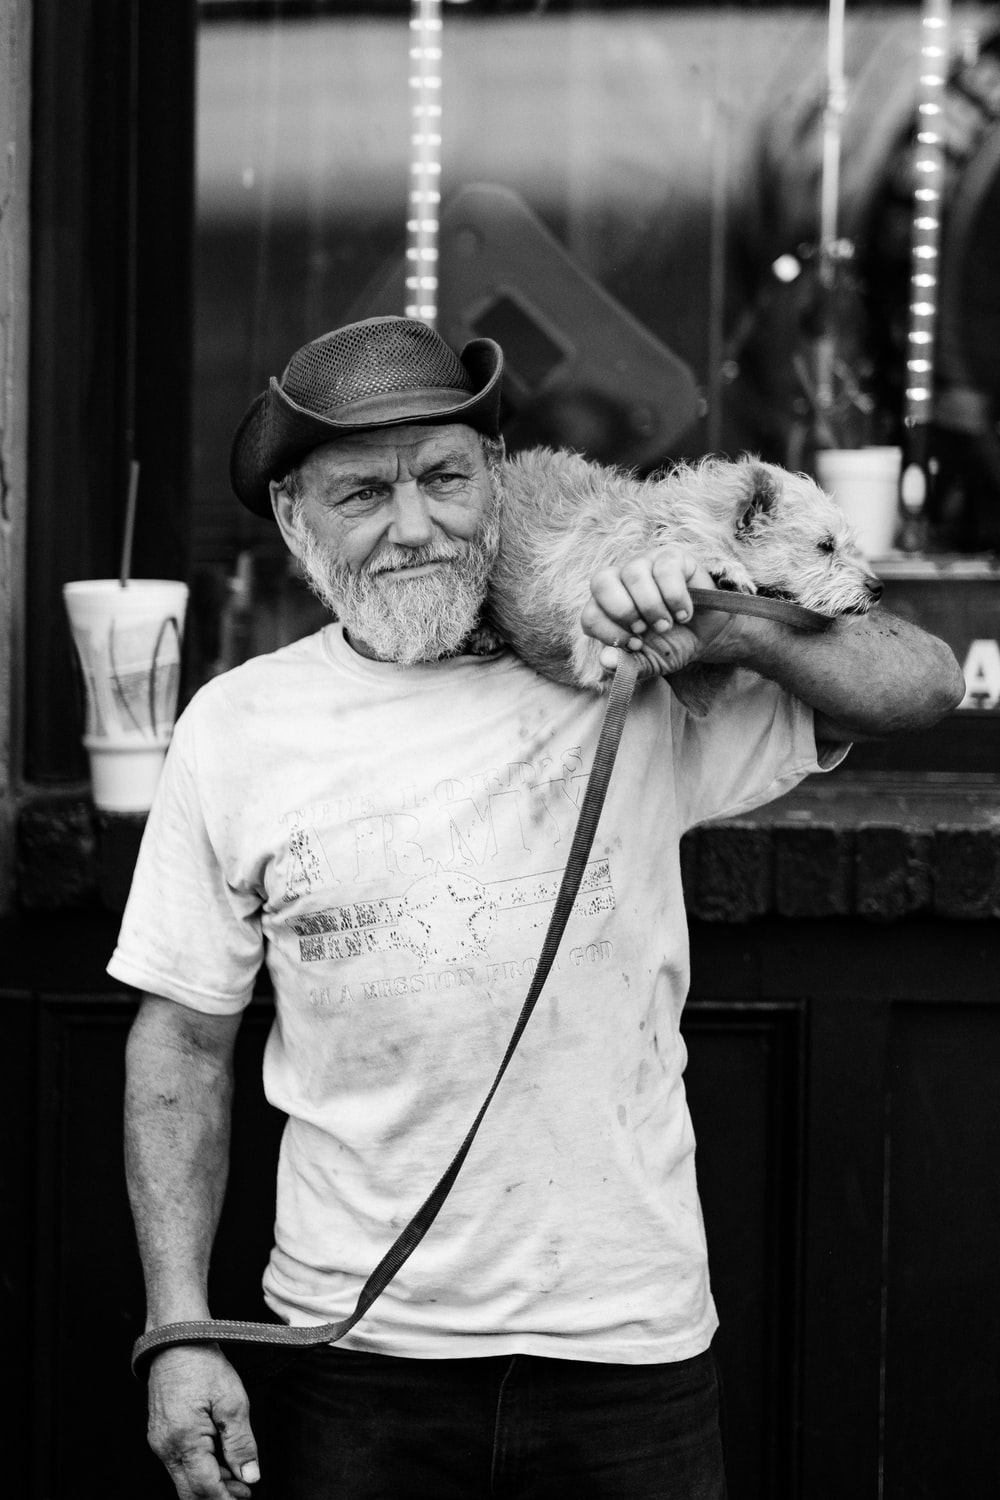 grayscale photography of a man carrying dog